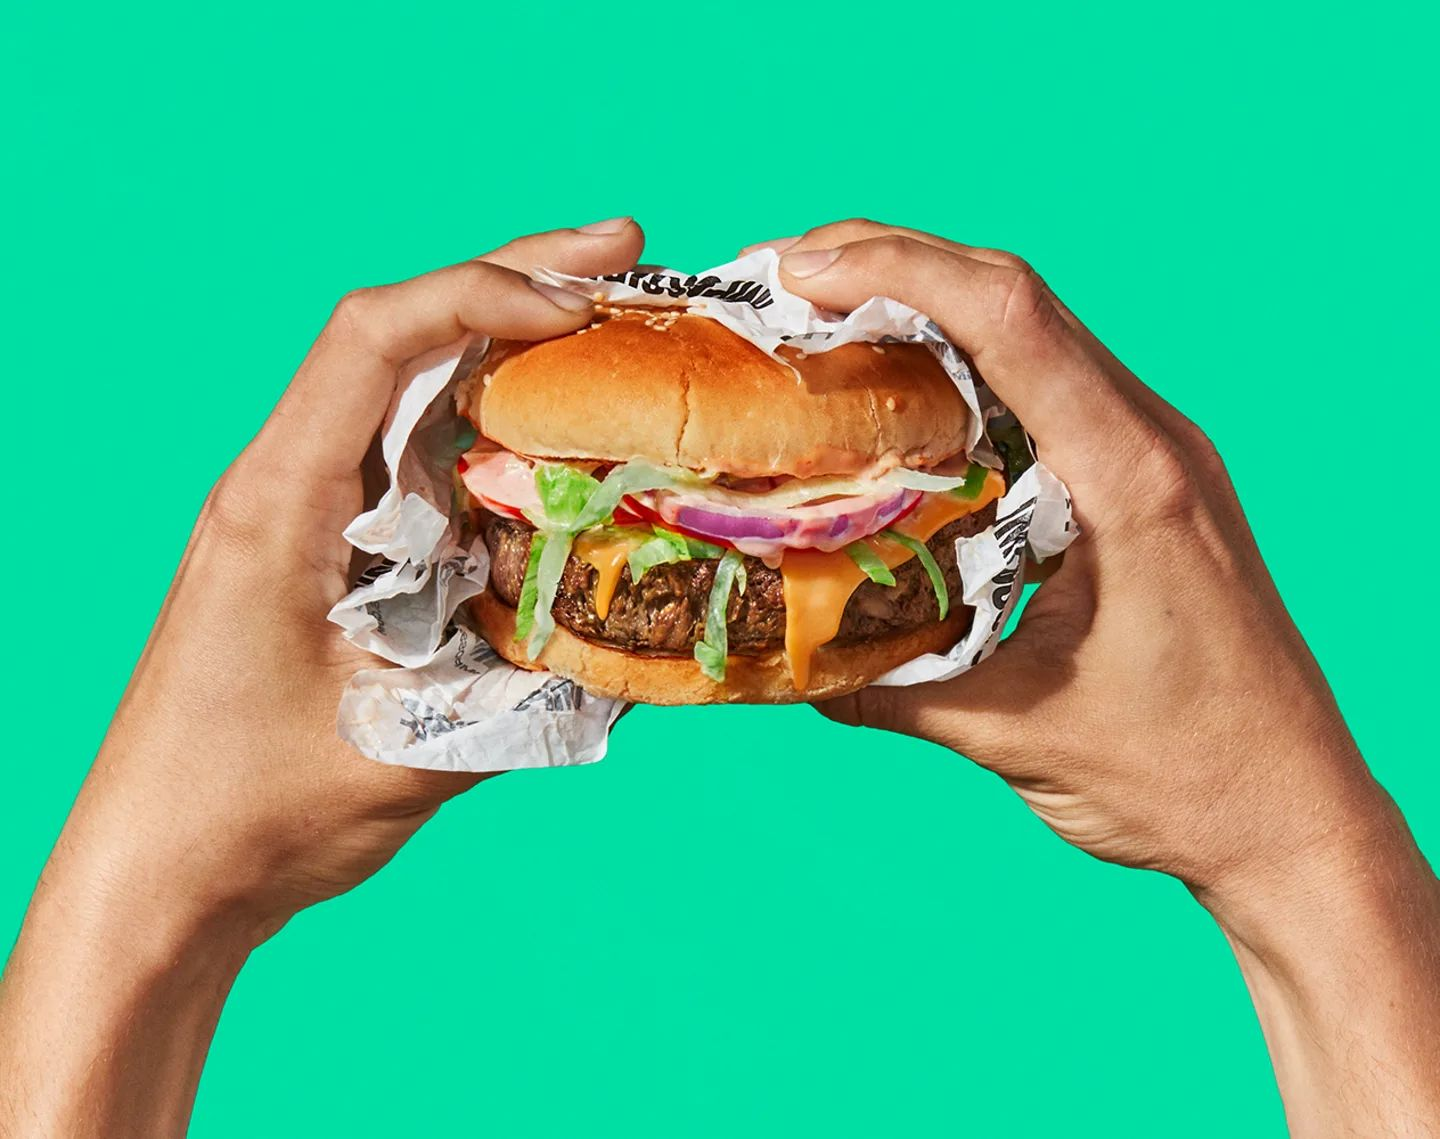 Photo:  https://impossiblefoods.com